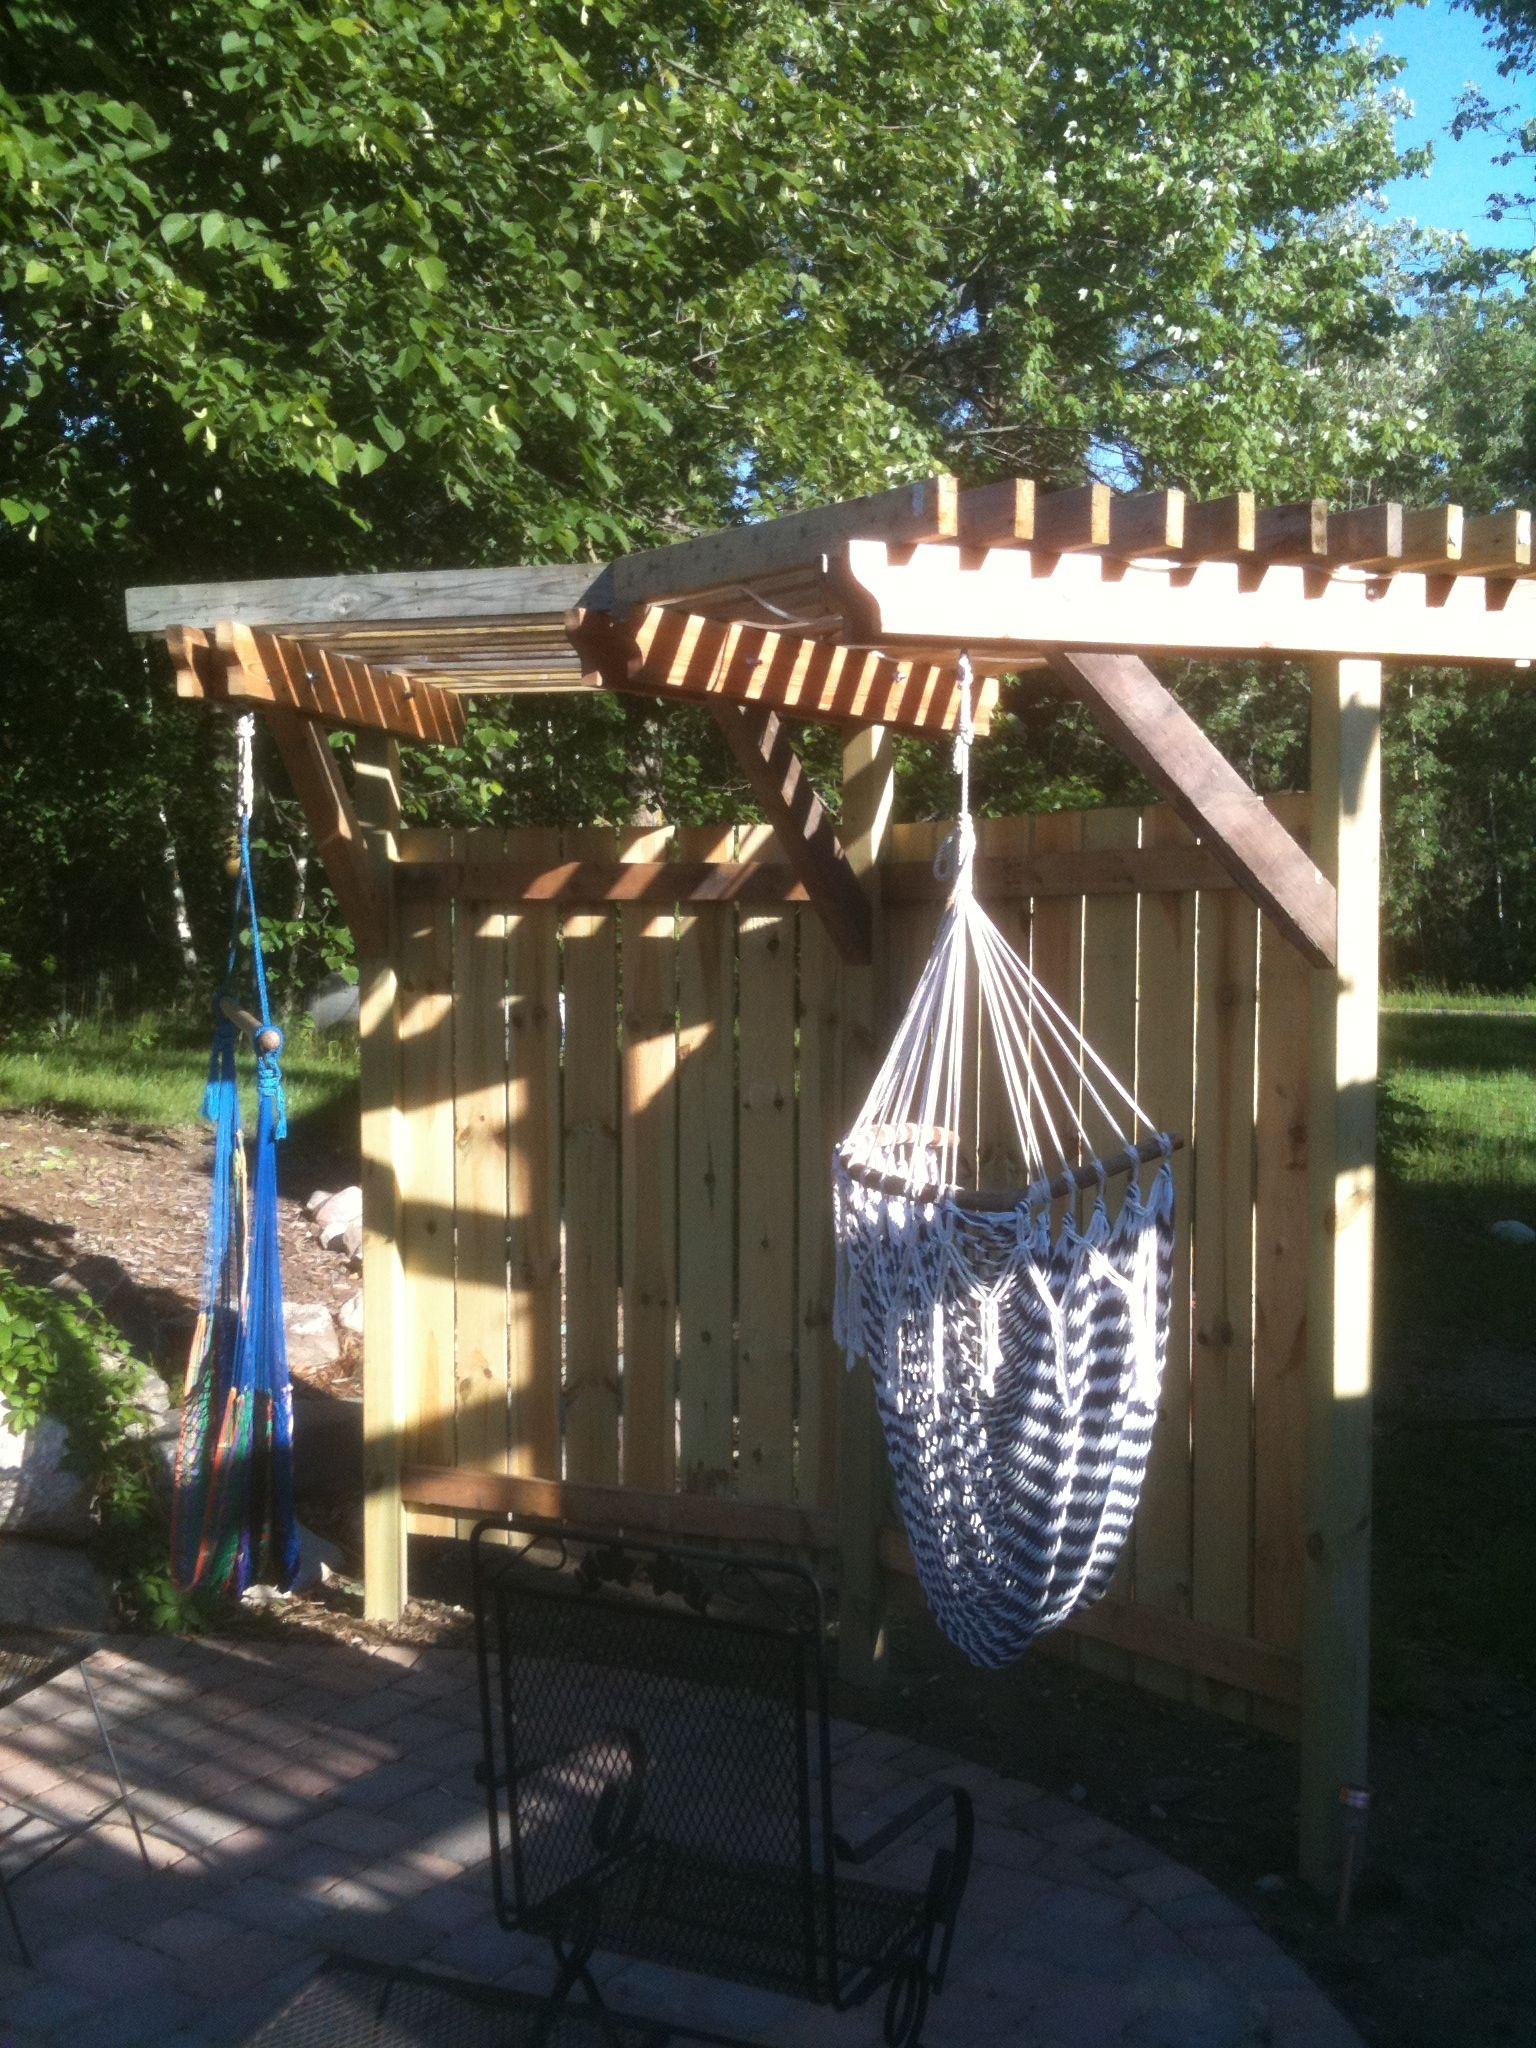 trellis or shade structure for hanging chair hammock landscapes